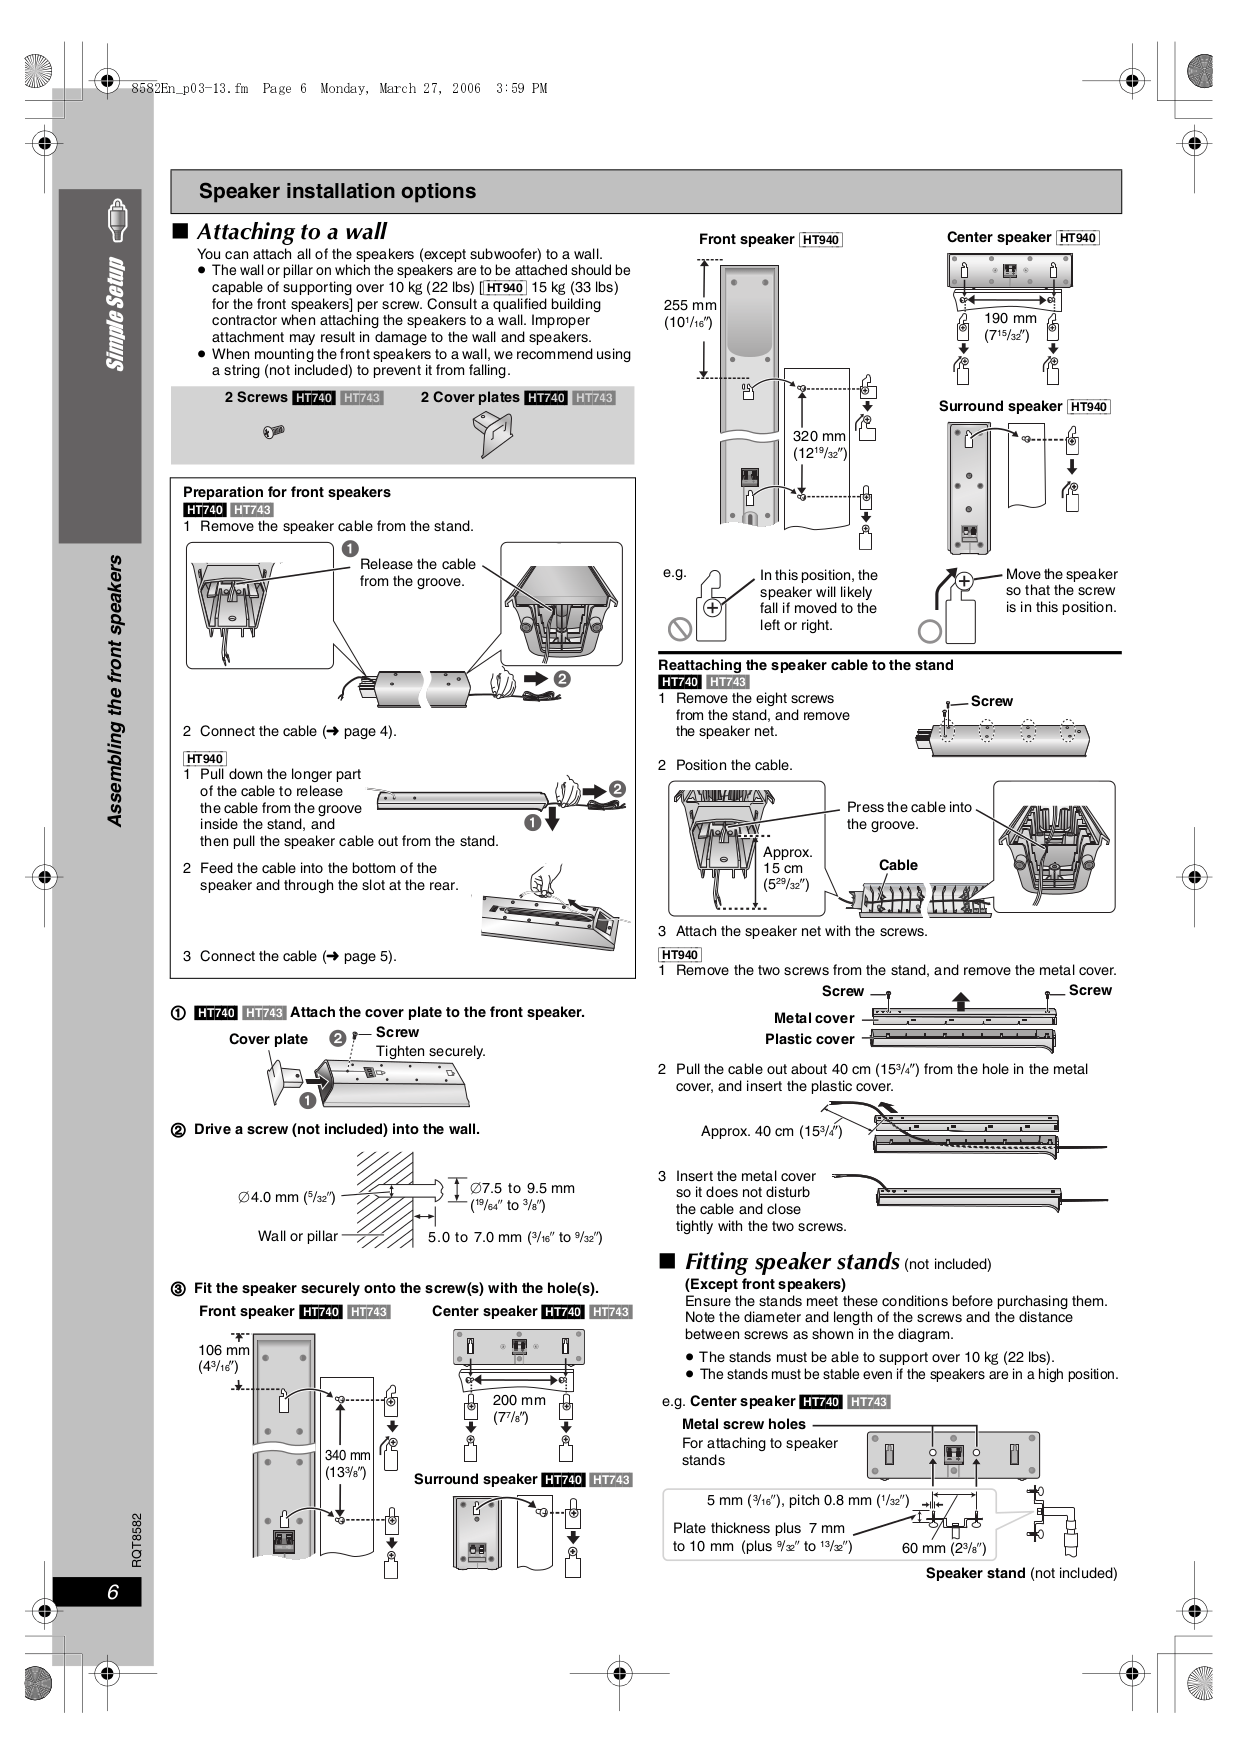 PDF manual for Panasonic Home Theater SC-HT740